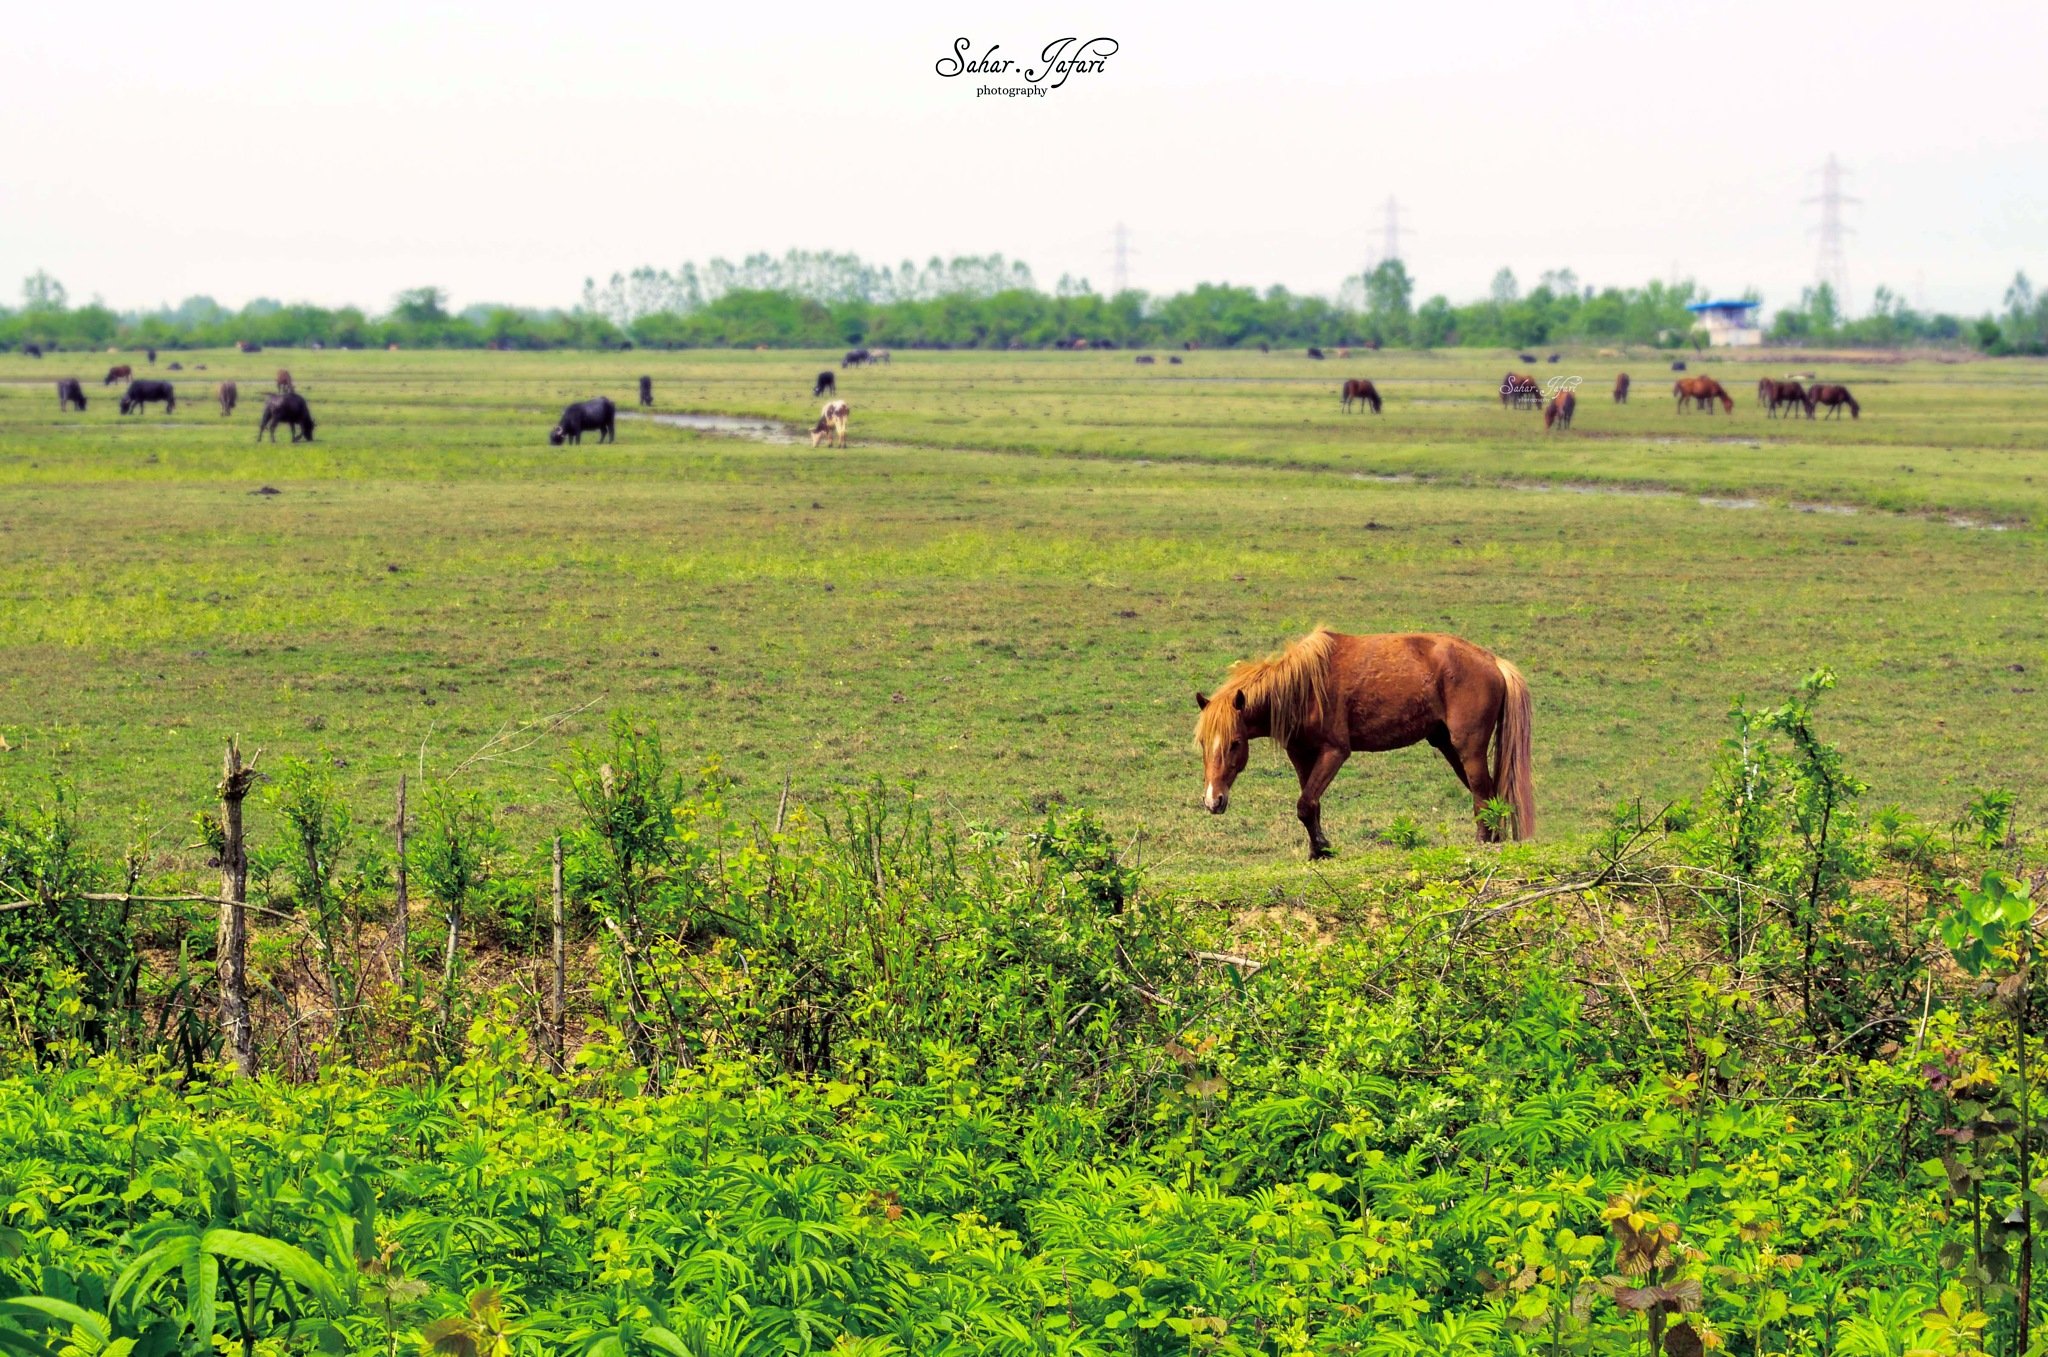 Pasture by Sahar.Jafari